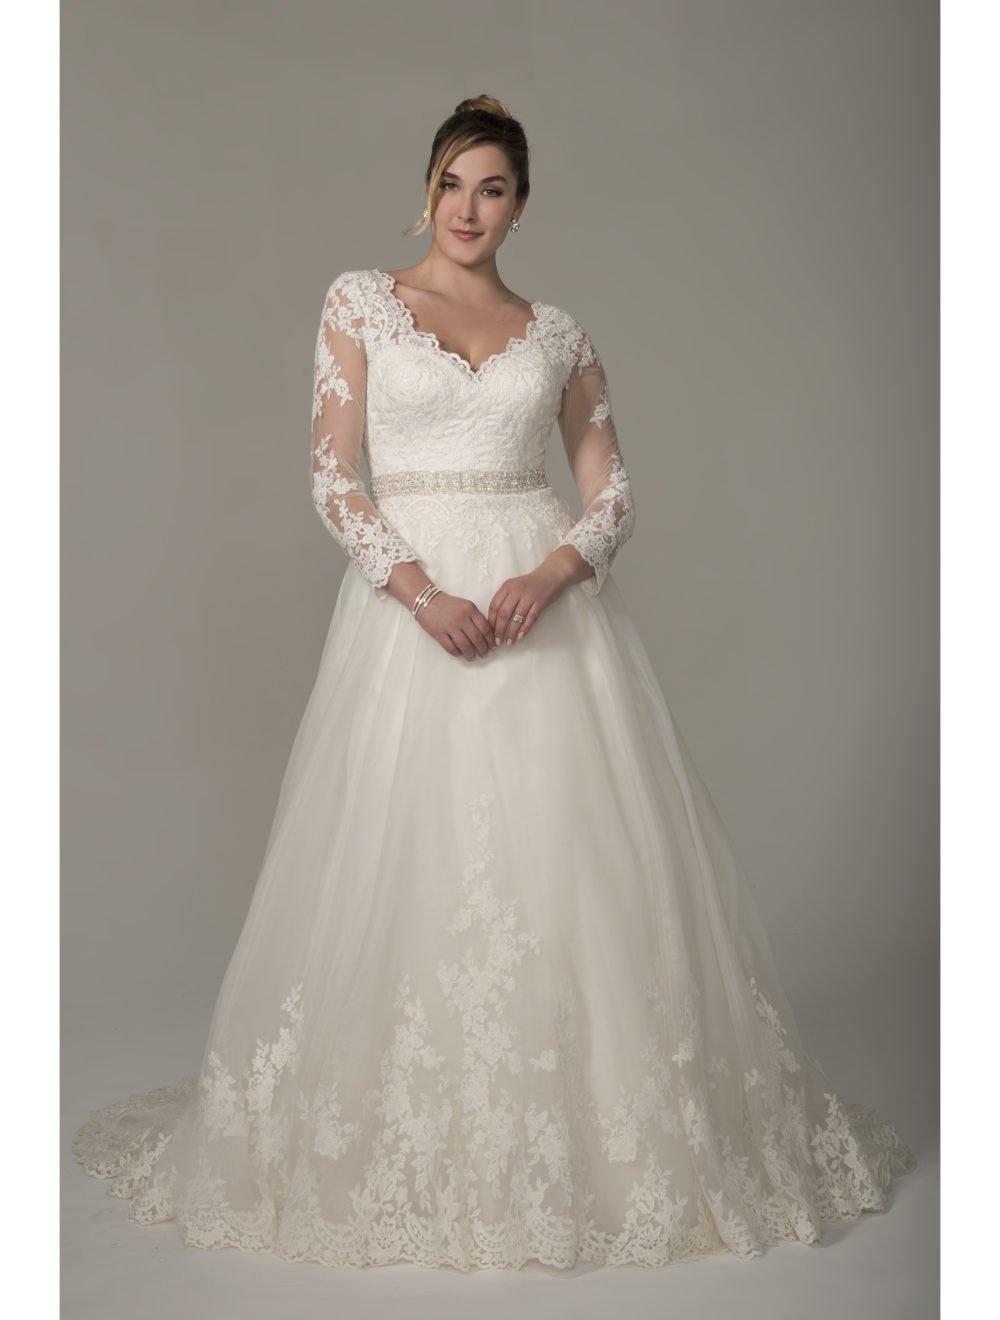 Buy 2017 plus size wedding dresses with for Wedding dresses for larger sizes